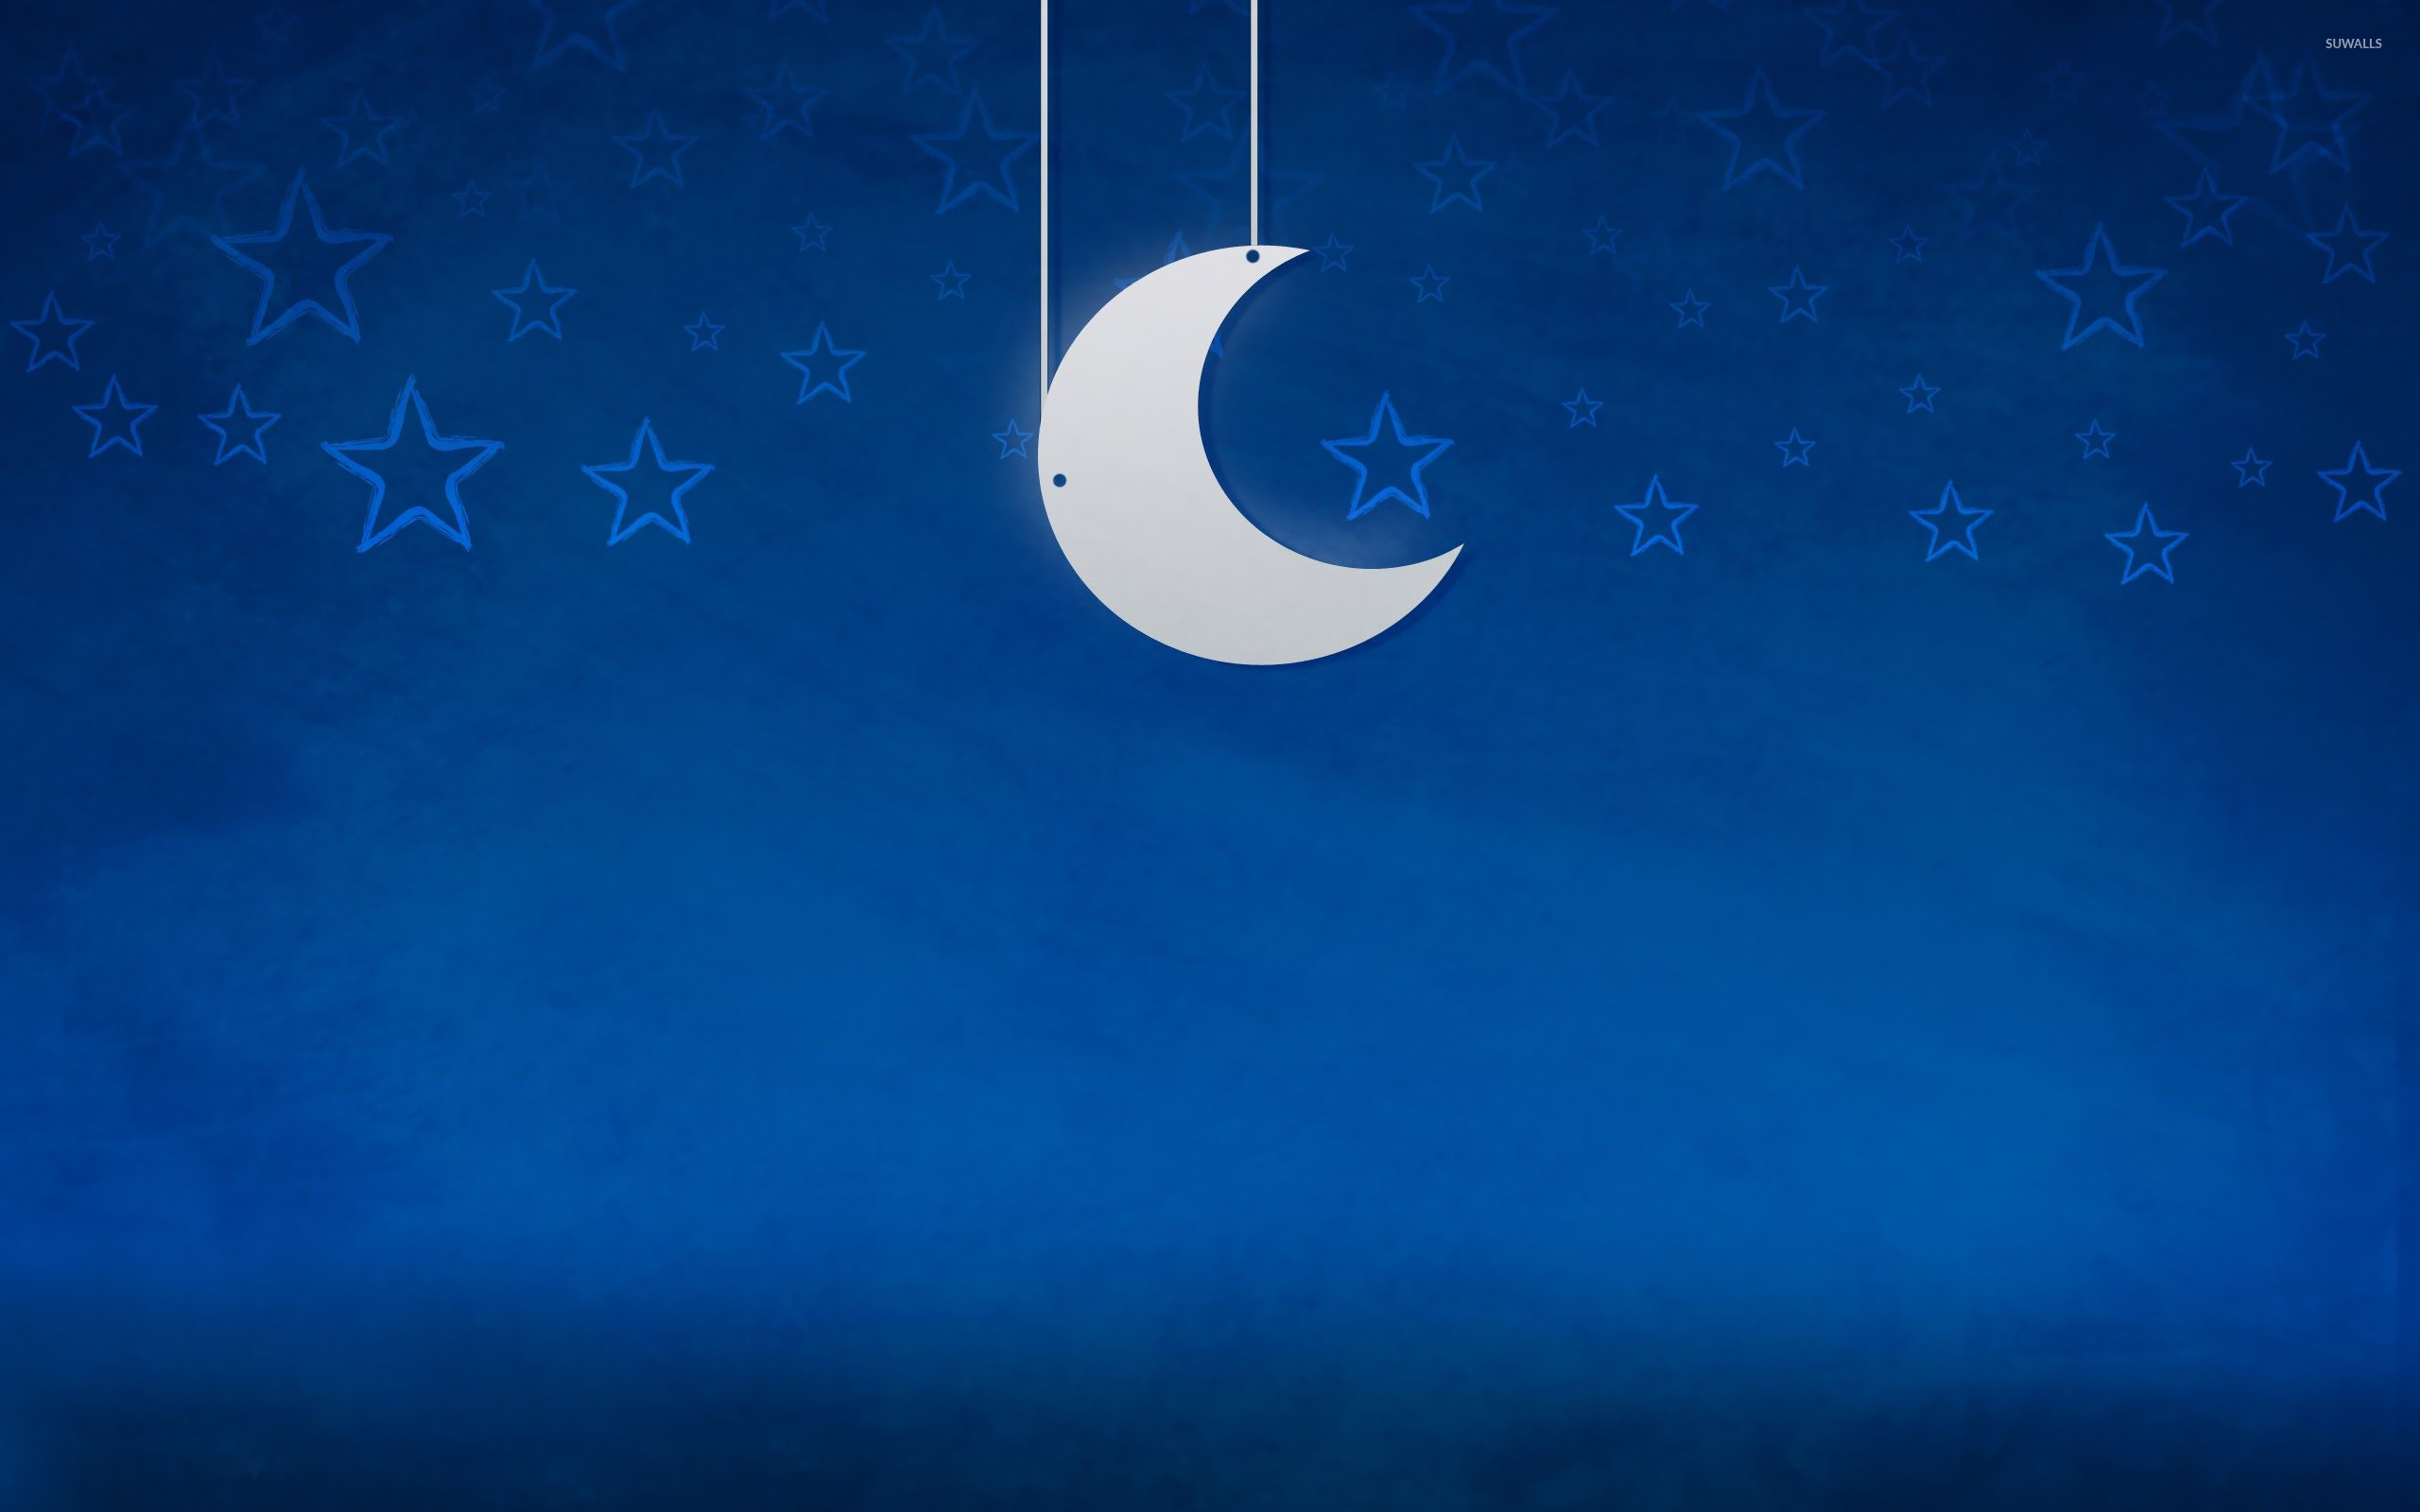 Moon And Stars 2 Wallpaper Vector Wallpapers 22060